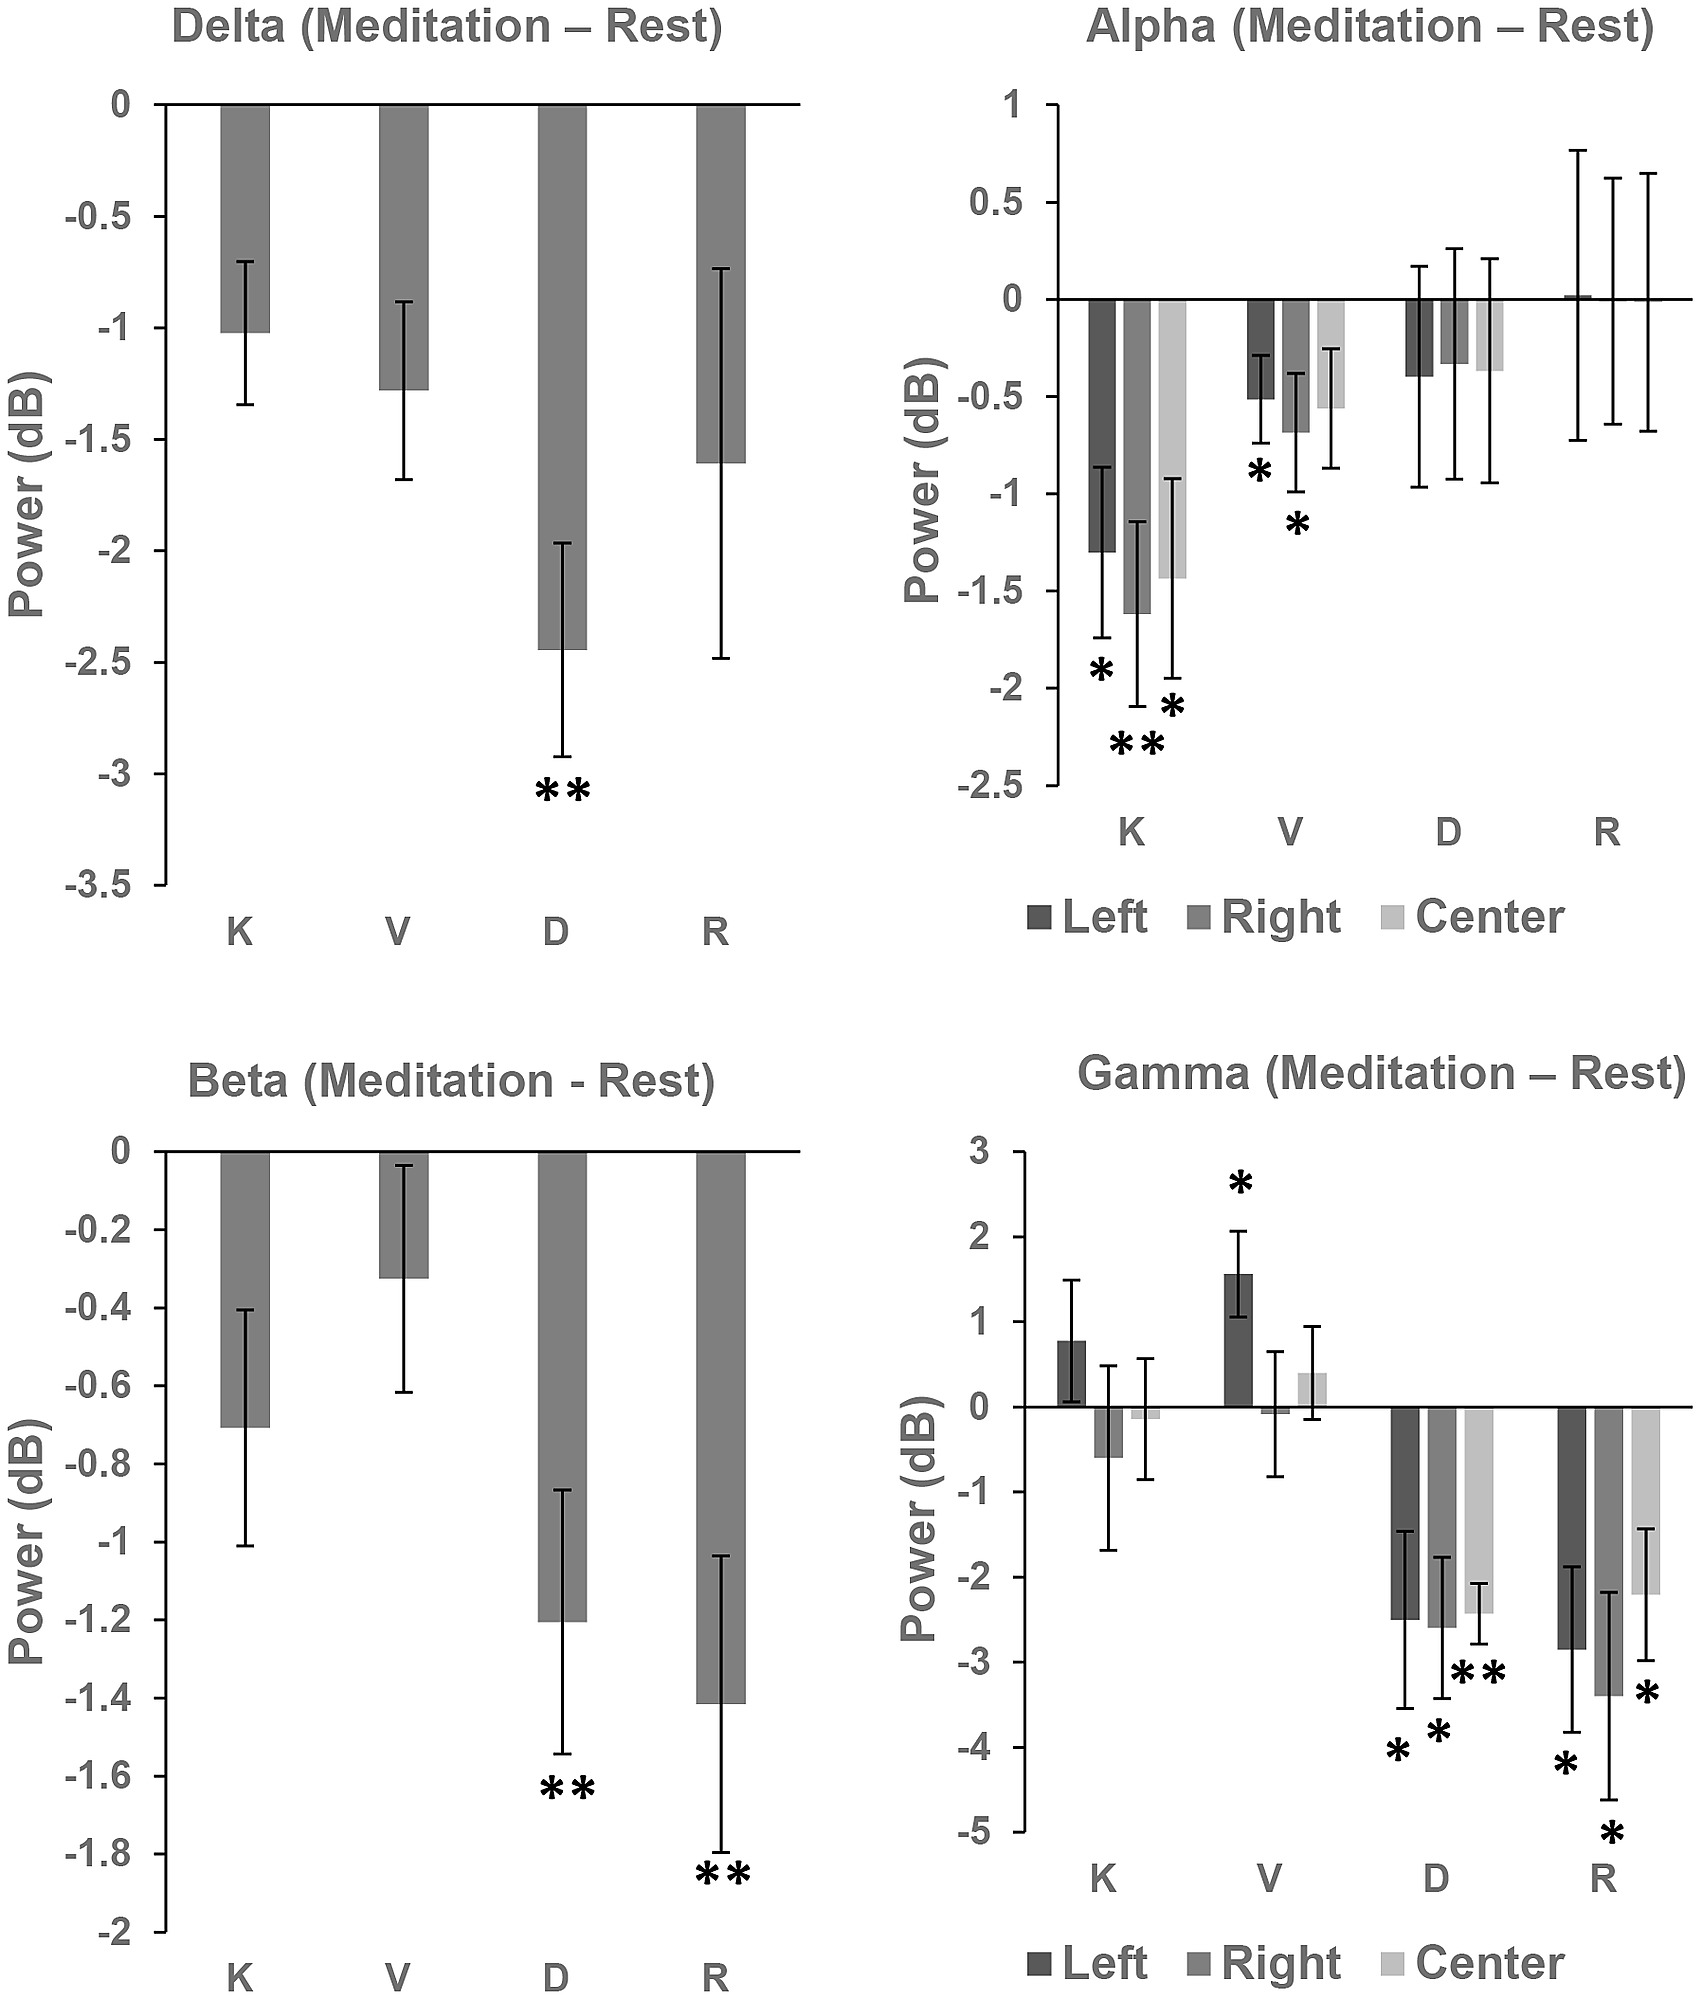 Differences in EEG frequency power between Meditation and